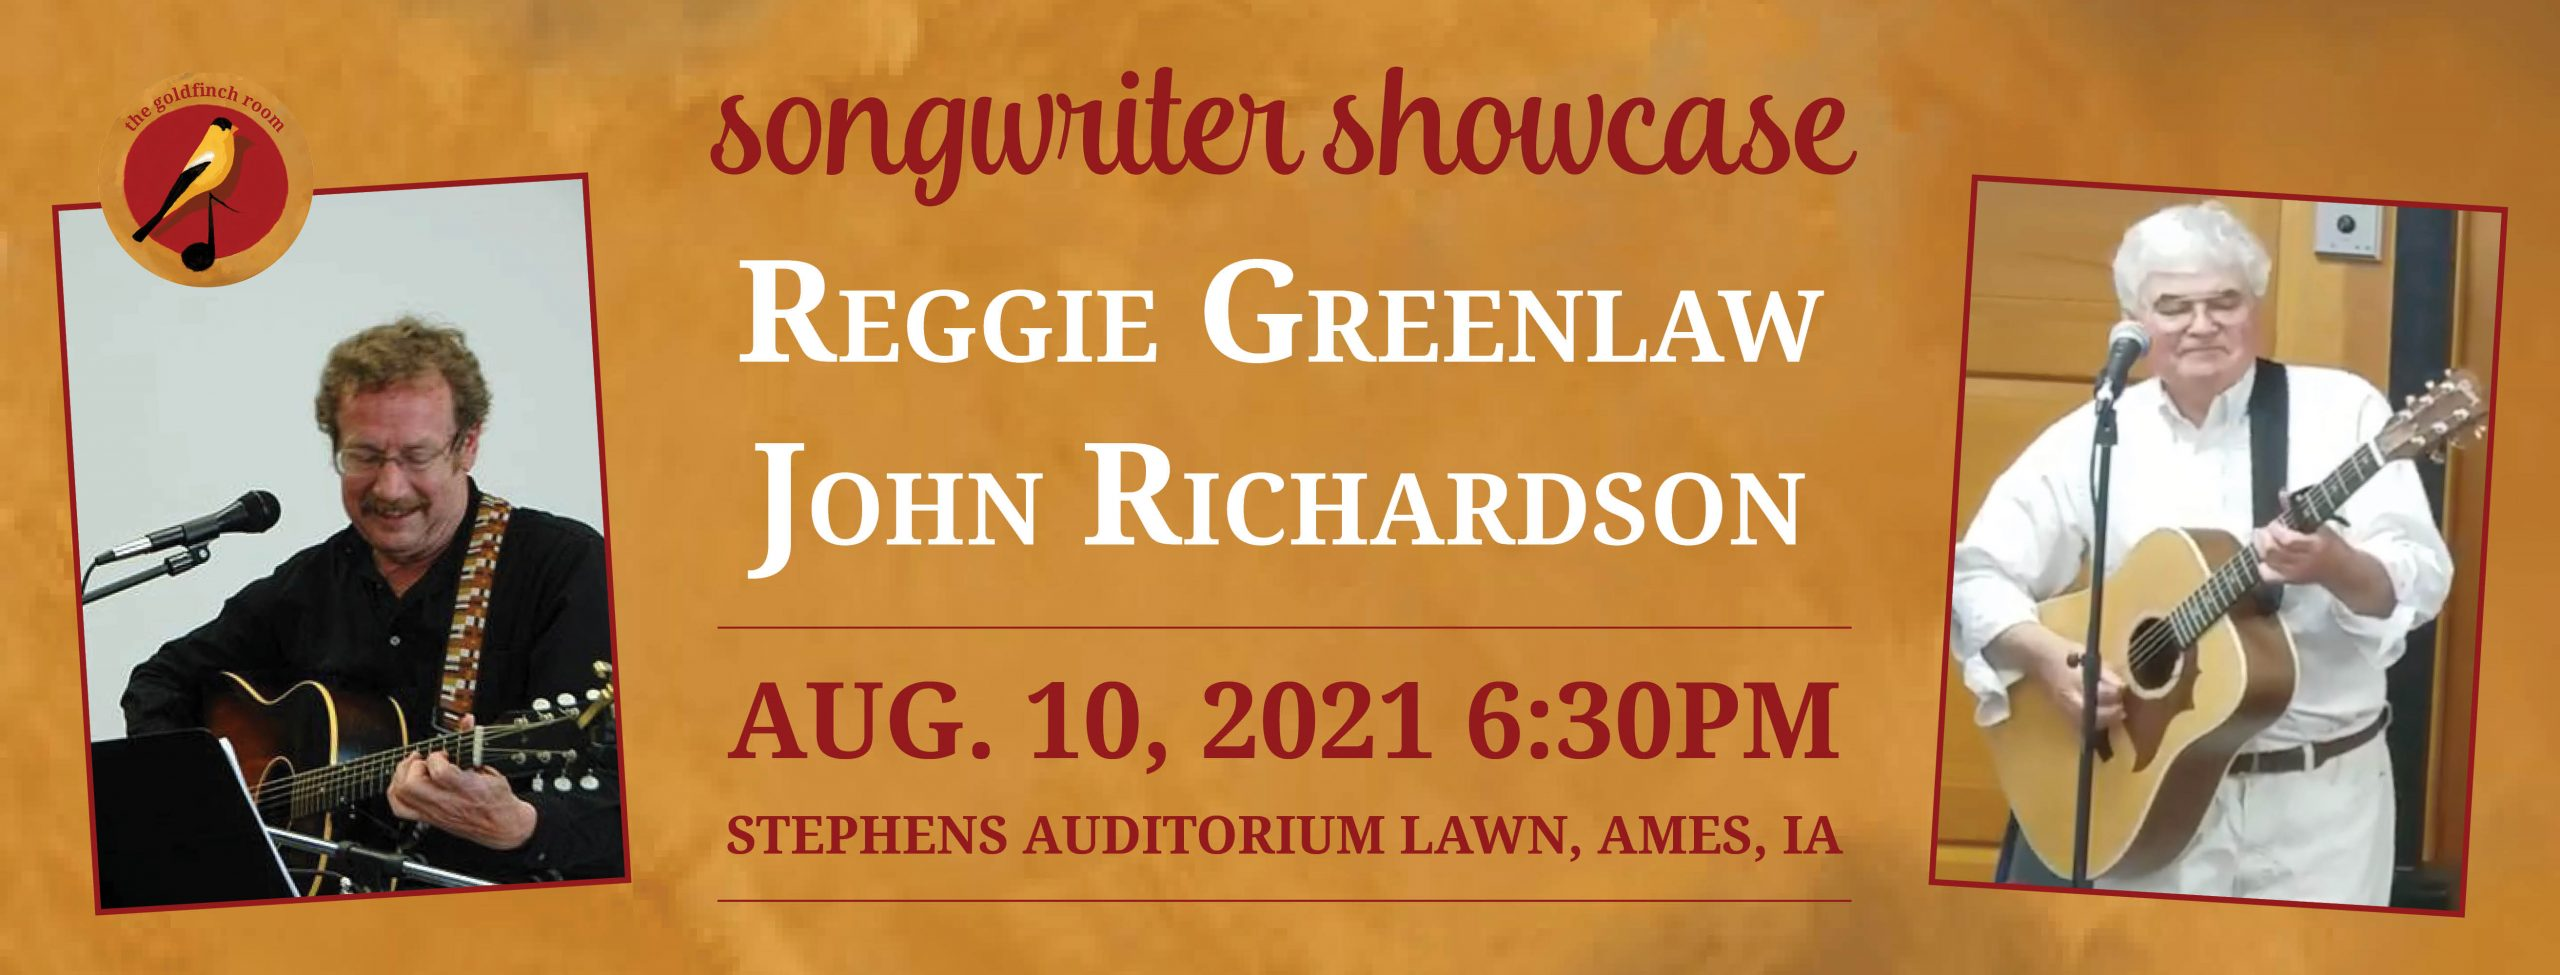 Reggie Greenlaw and John Richardson at the Goldfinch Room